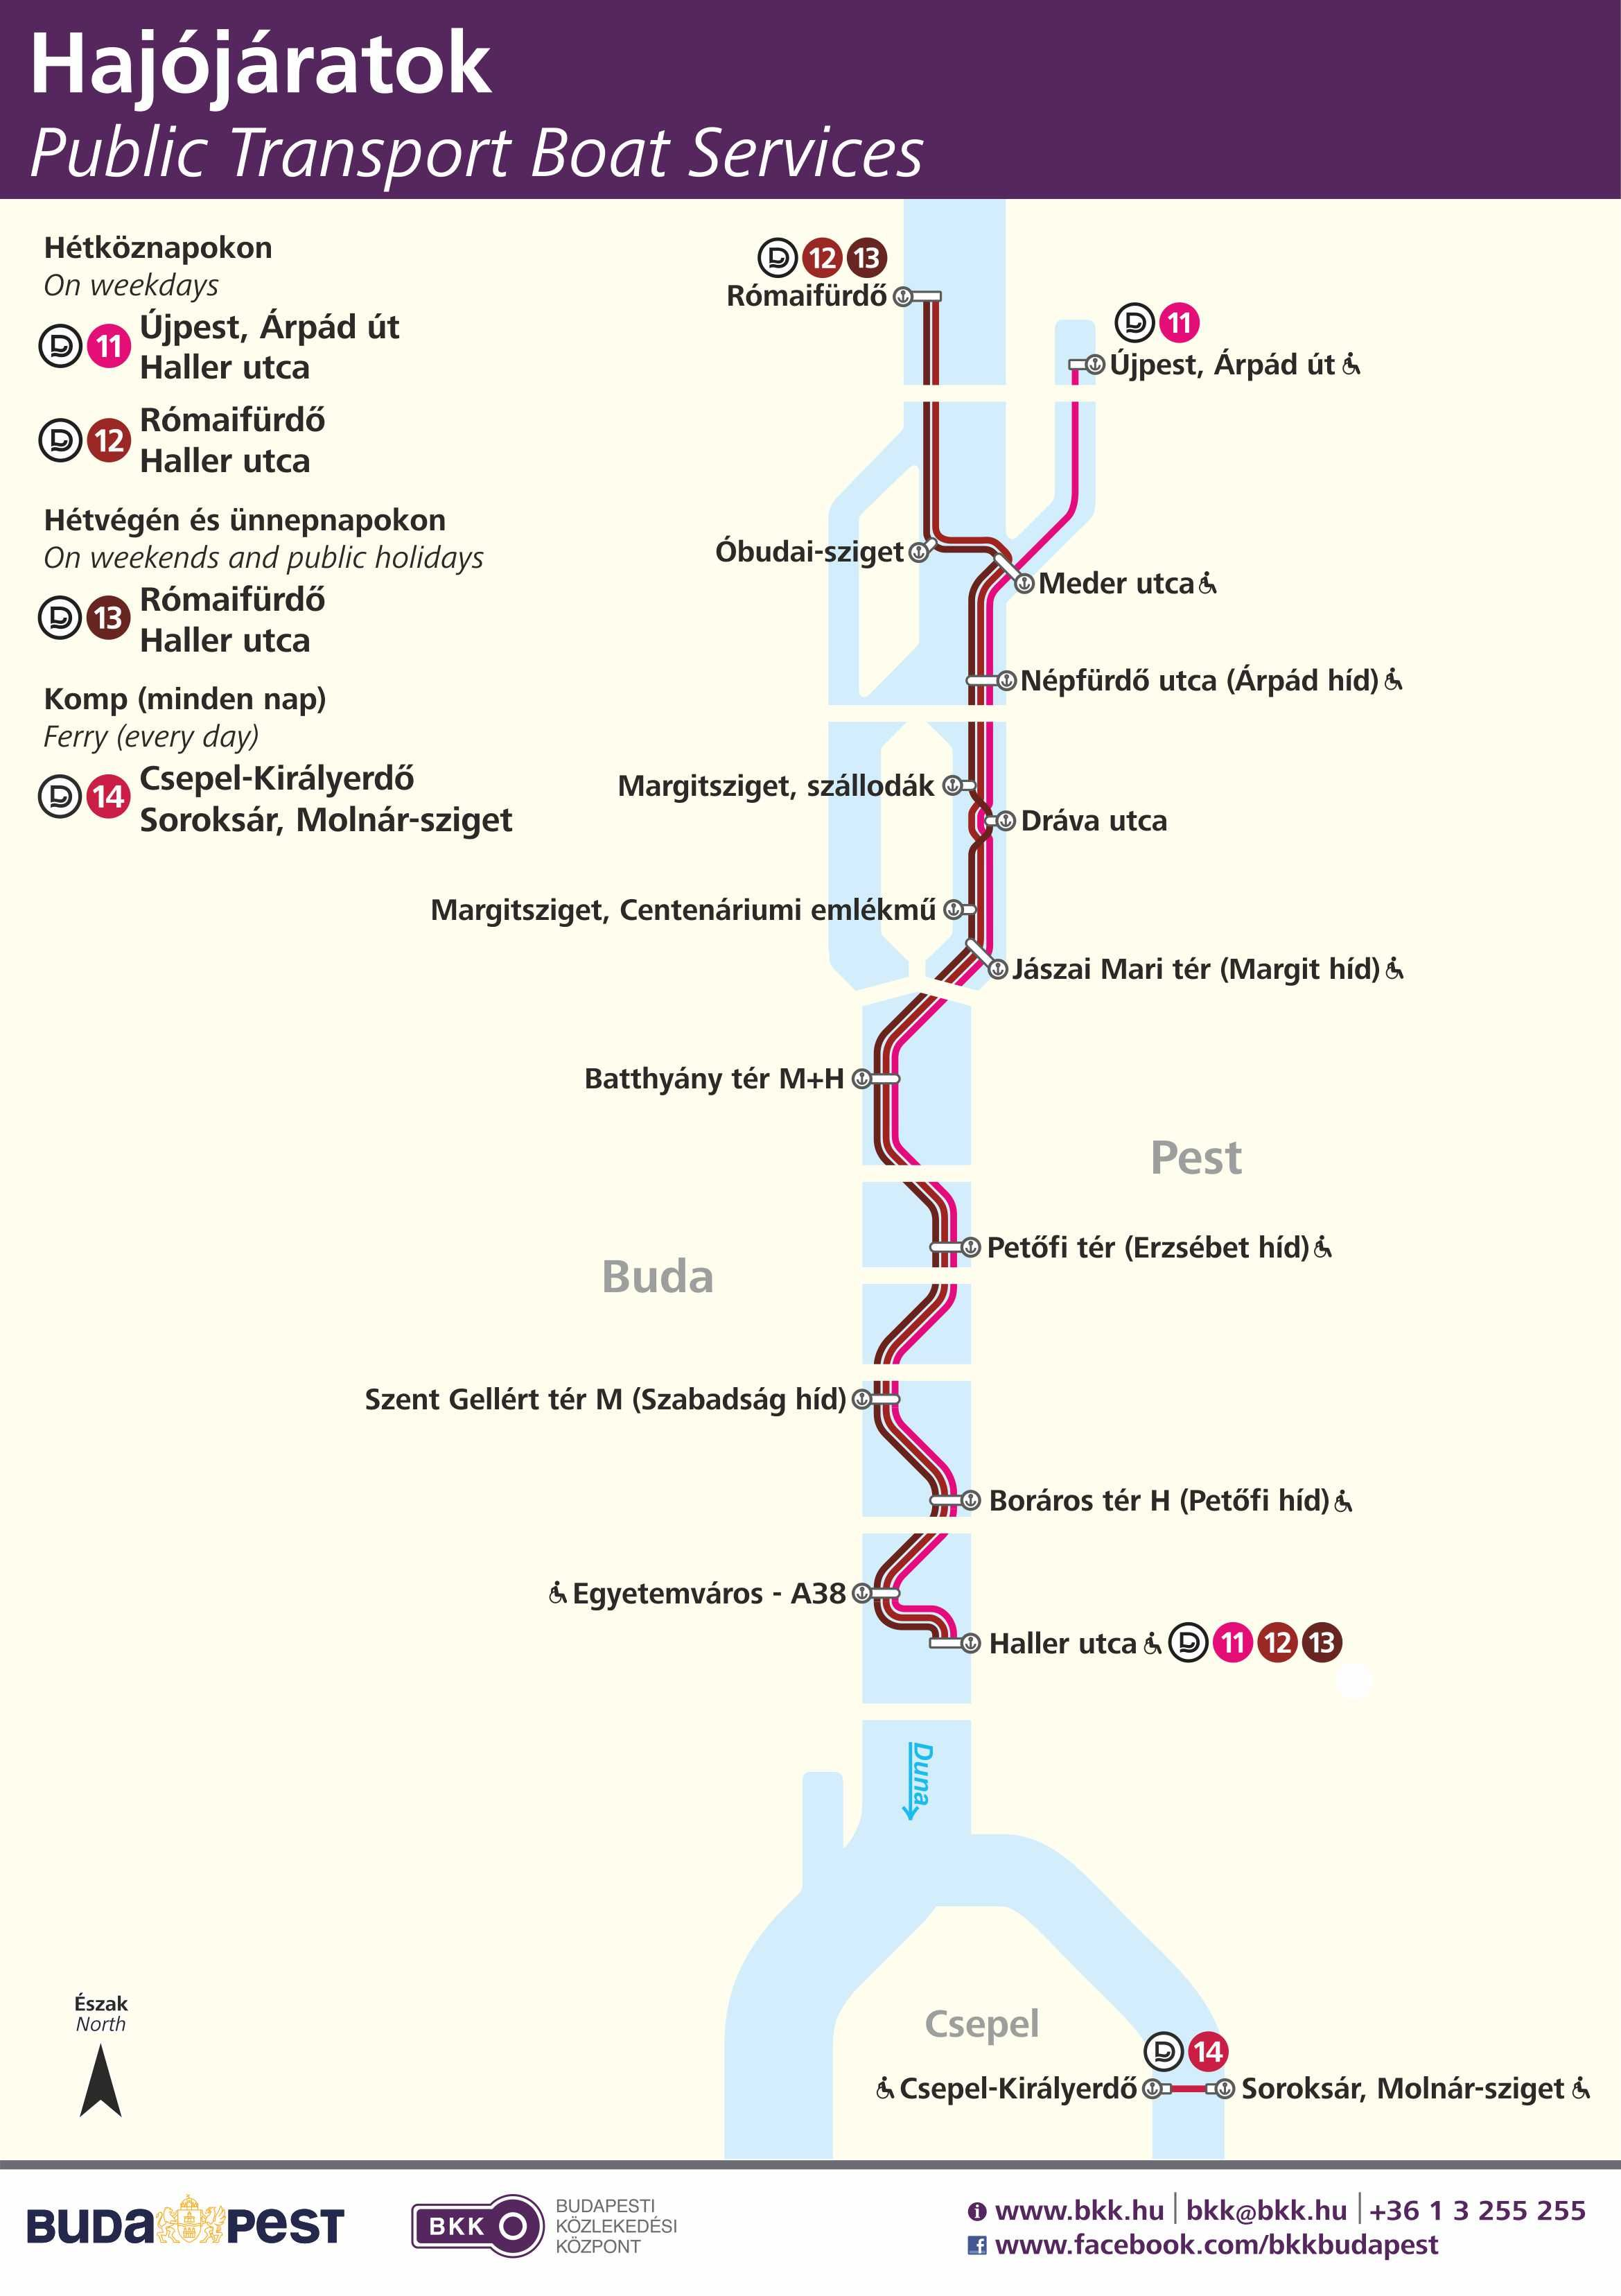 Budapest City Boat Routes Enlarges Http Www Bkk Hu Wp Content